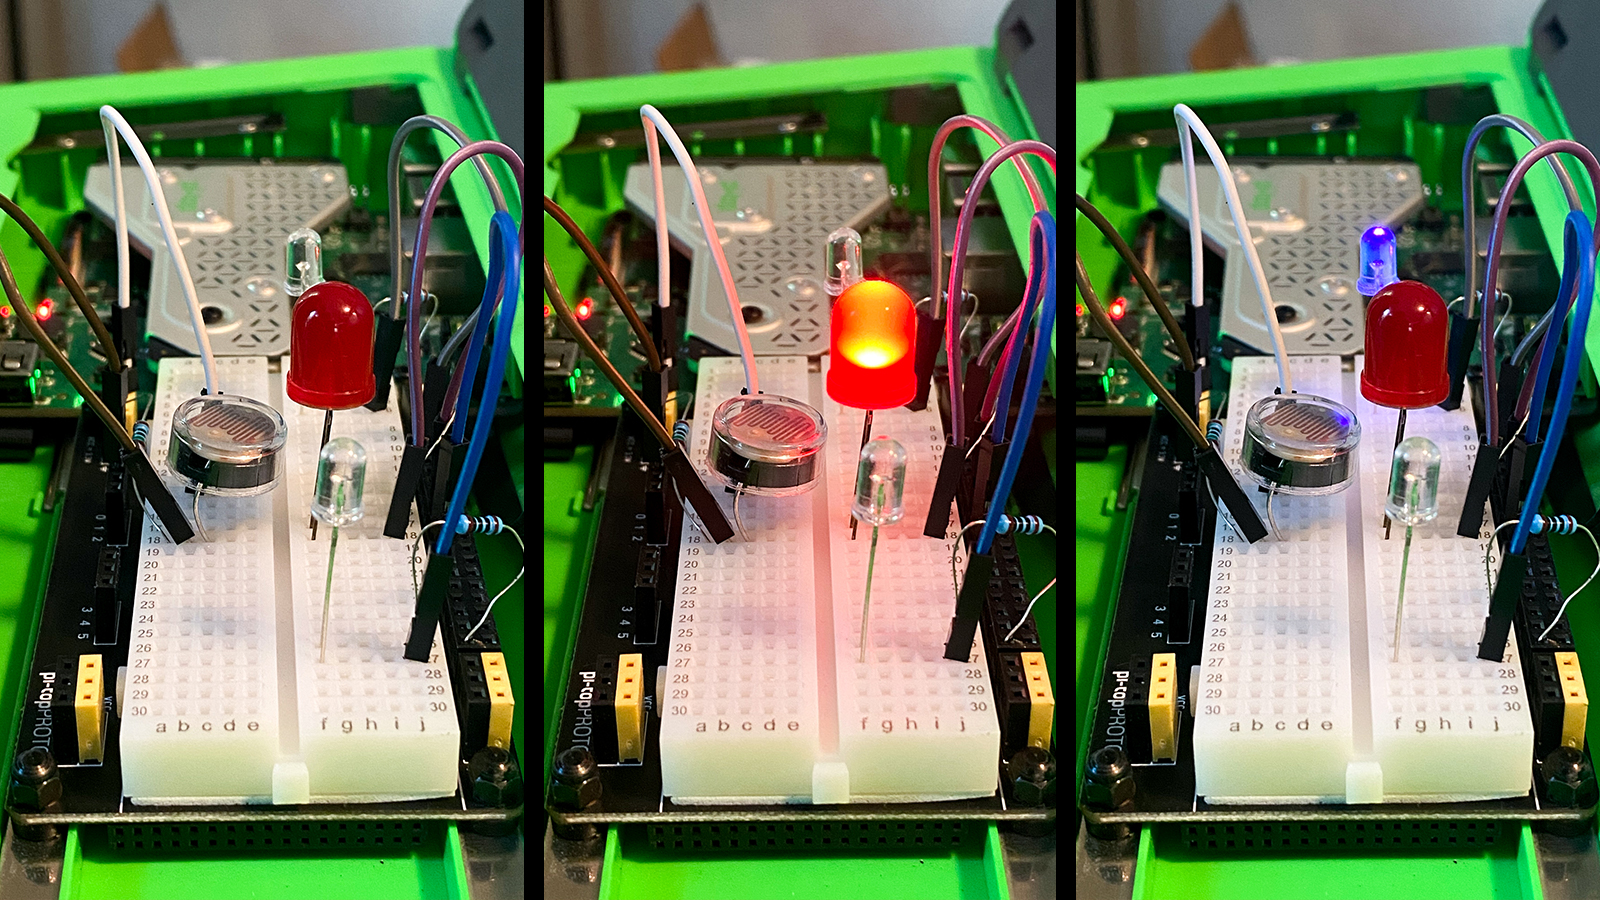 A collage of images showing various led lights connected to a breadboard lighting up.